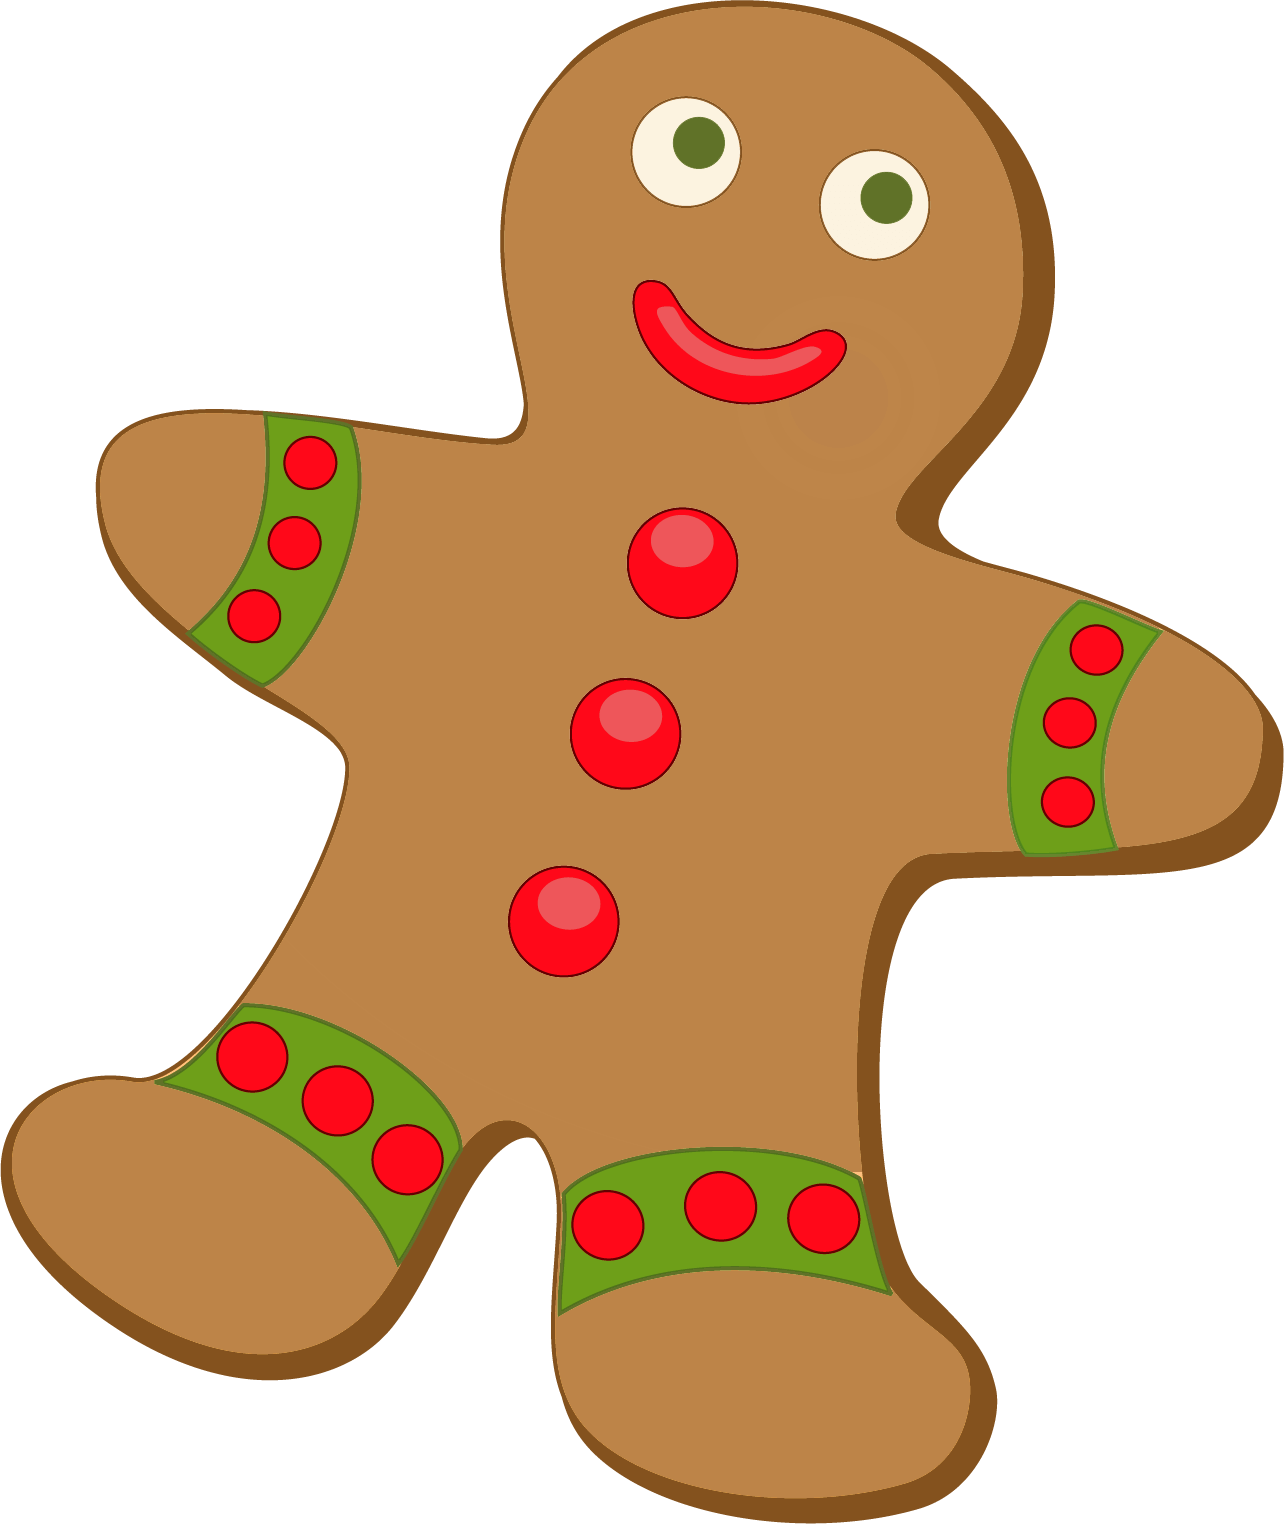 Gingerbread clipart december. House free at getdrawings